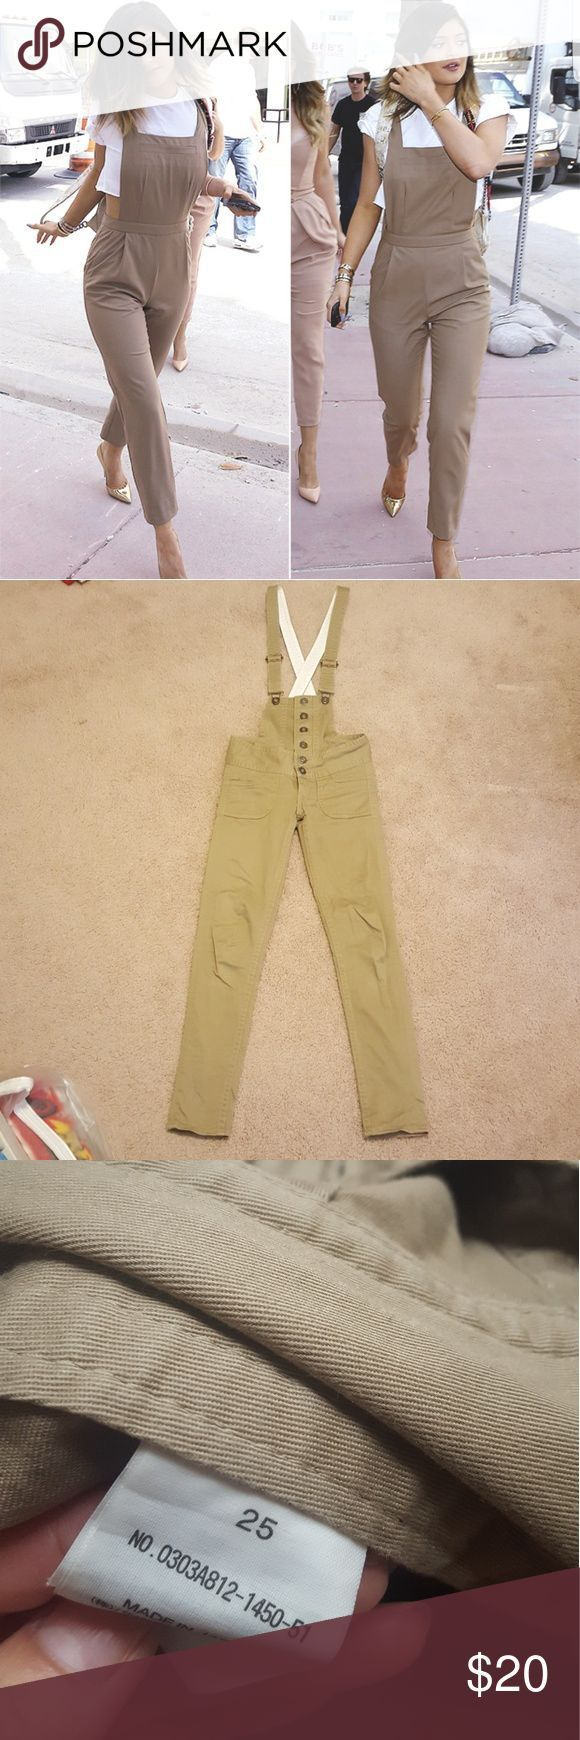 Tendance salopette 2017  SLY jeans overall beige SZ 25 Worn 2-3 times  Brand is SLY jeans not Kendall &a